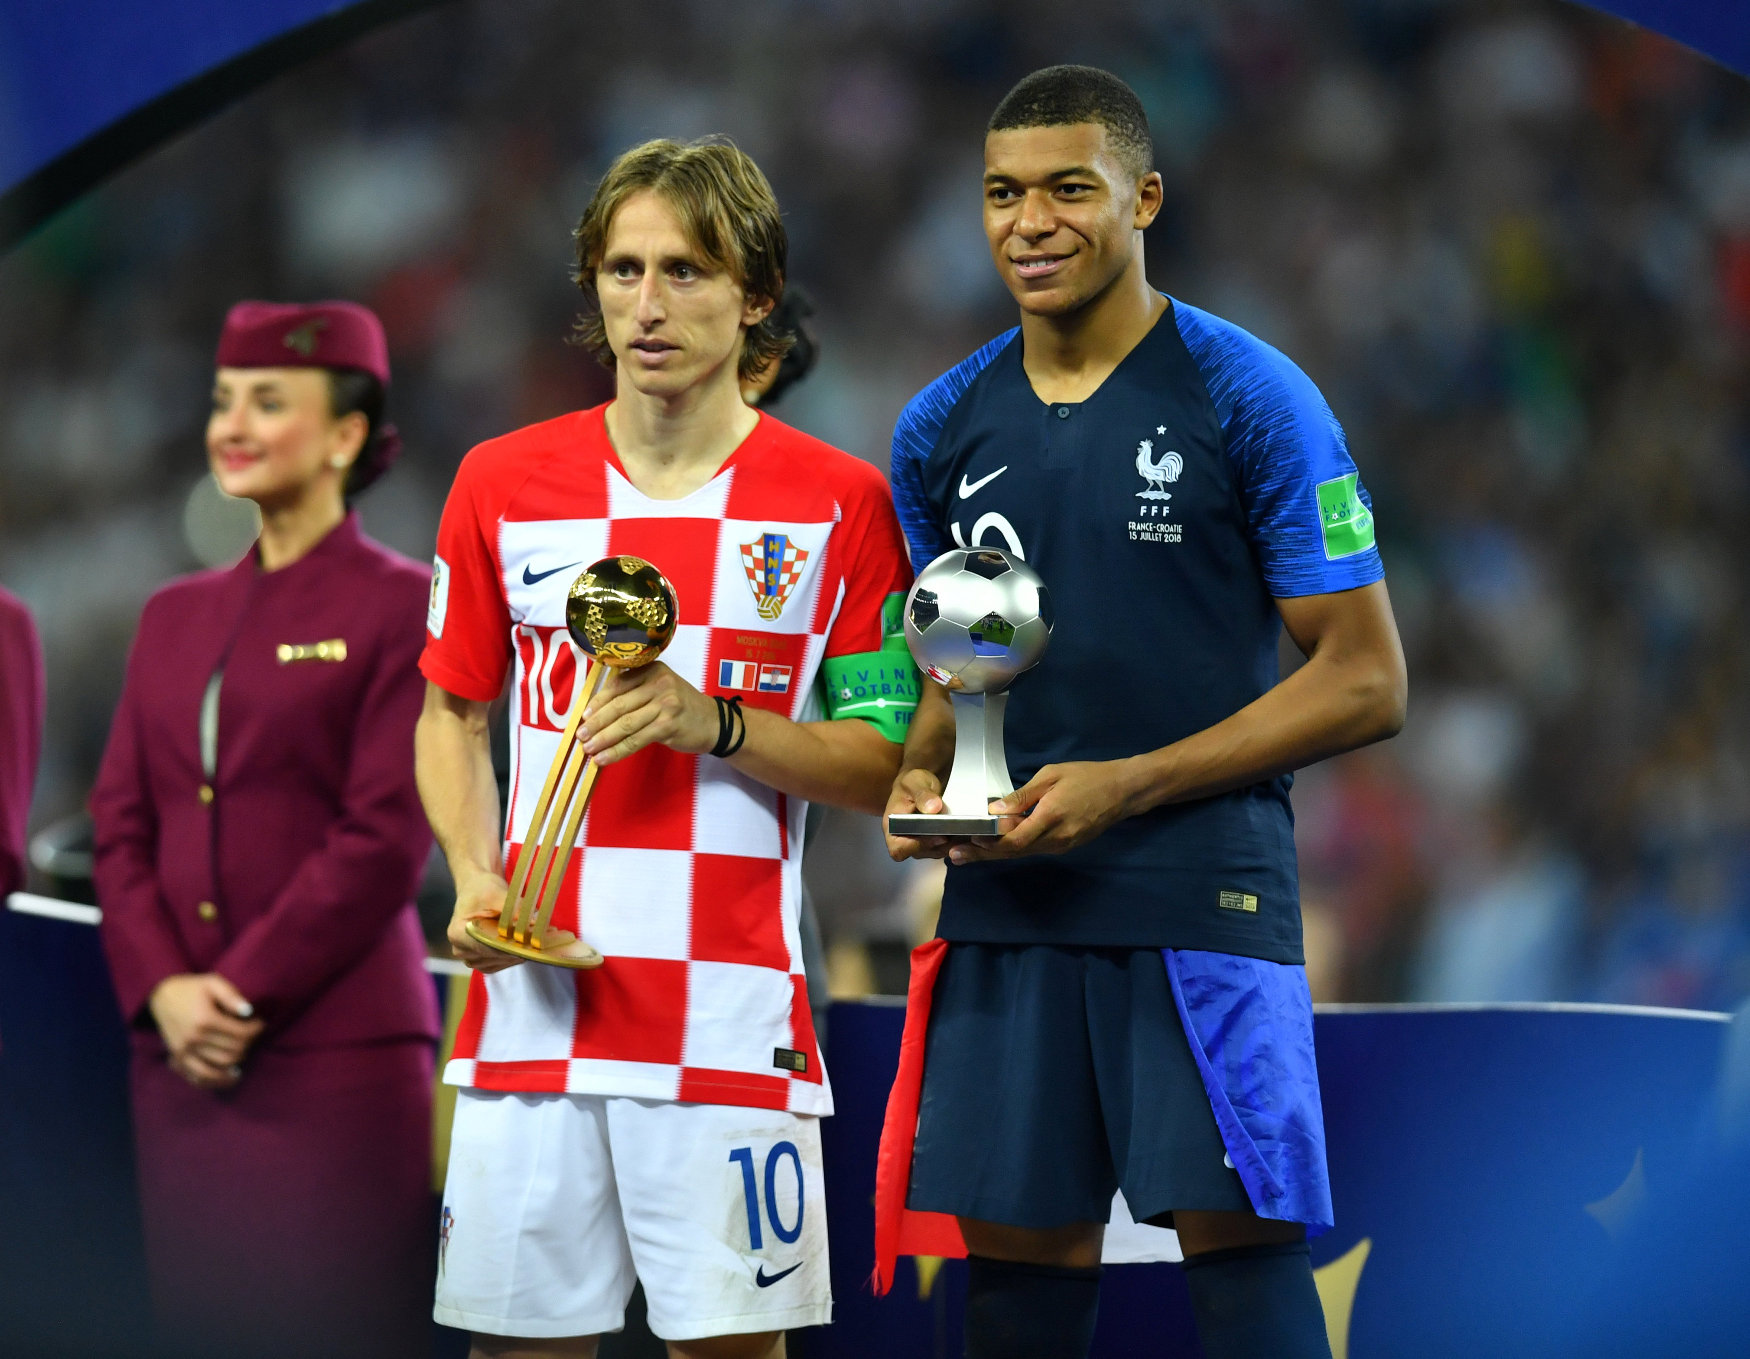 2018-07-15T174000Z_209671474_RC1CE3FAC940_RTRMADP_3_SOCCER-WORLDCUP-FINAL_1